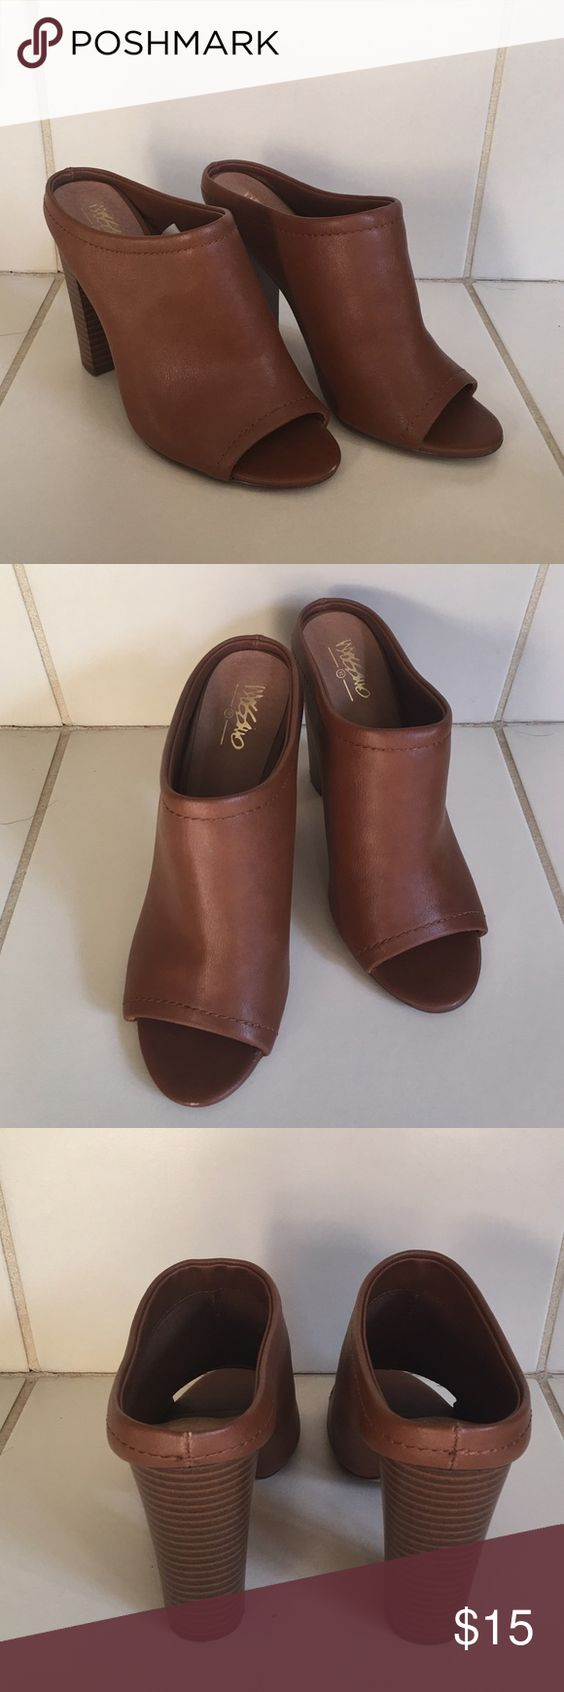 Mossimo Heels Super comfy and cute with jeans and dresses! Worn a handful of times! Mossimo Supply Co. Shoes